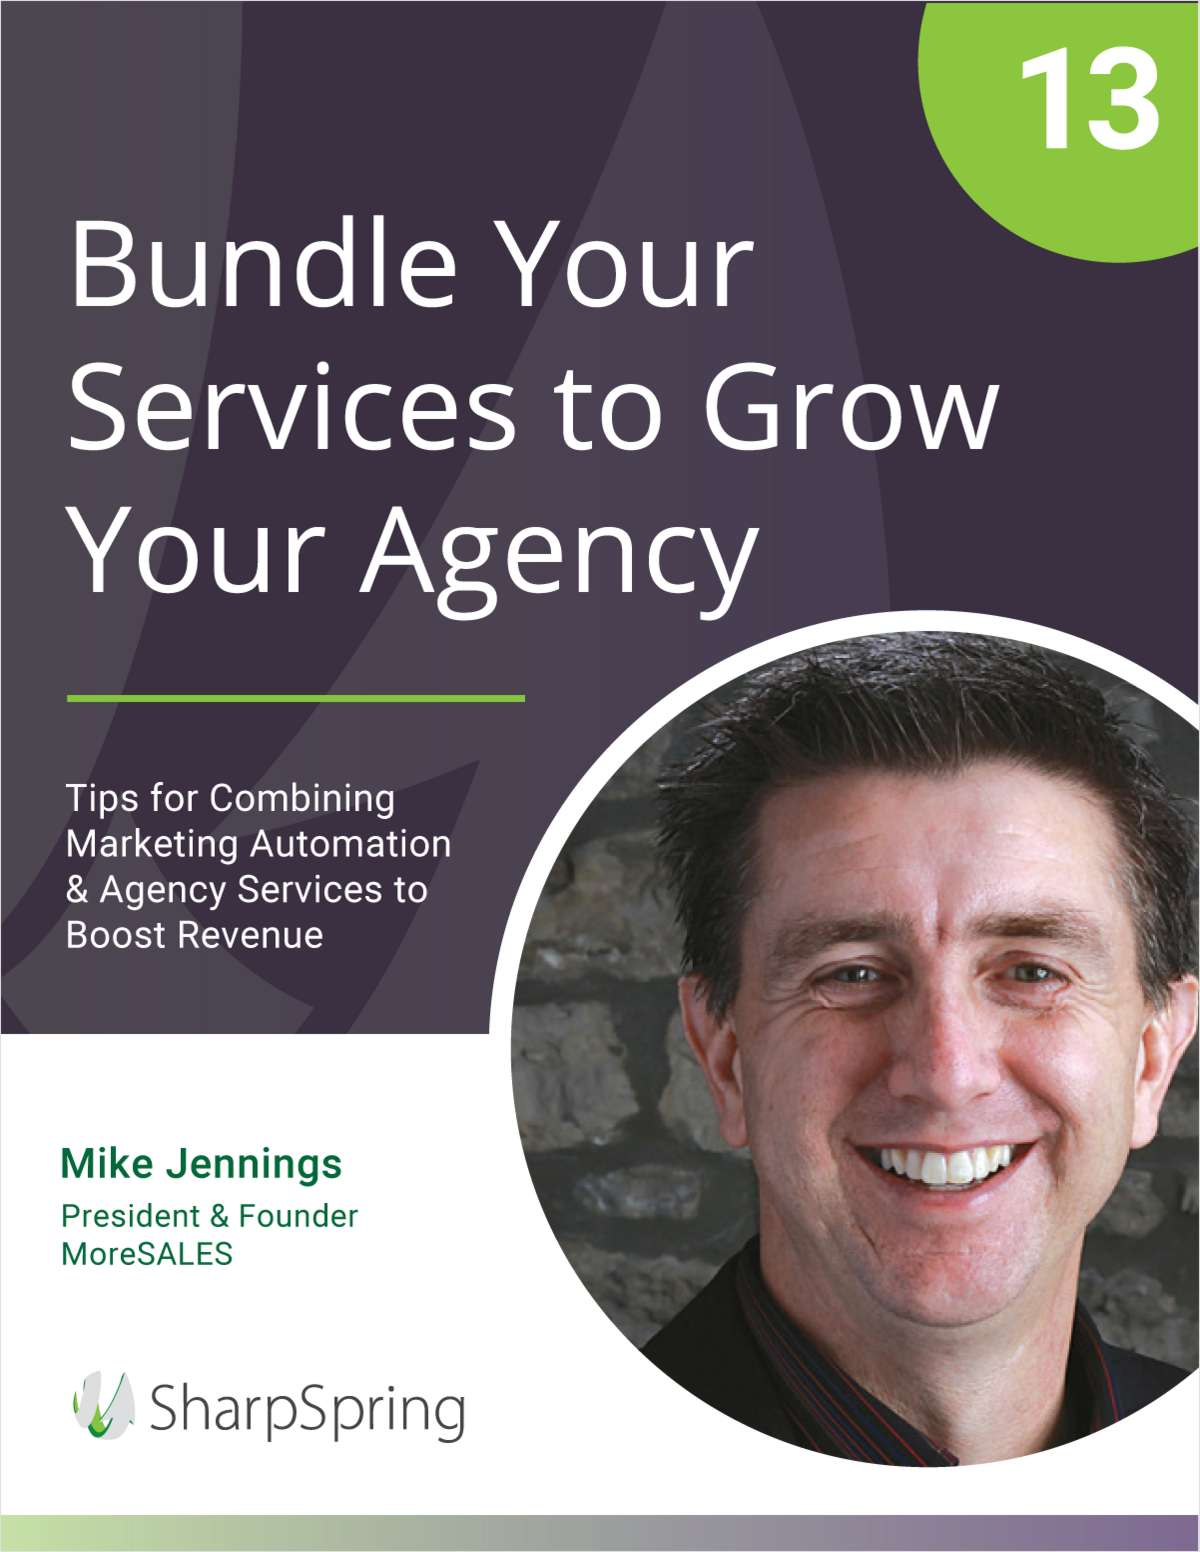 How to Bundle Agency Services to Boost Revenue